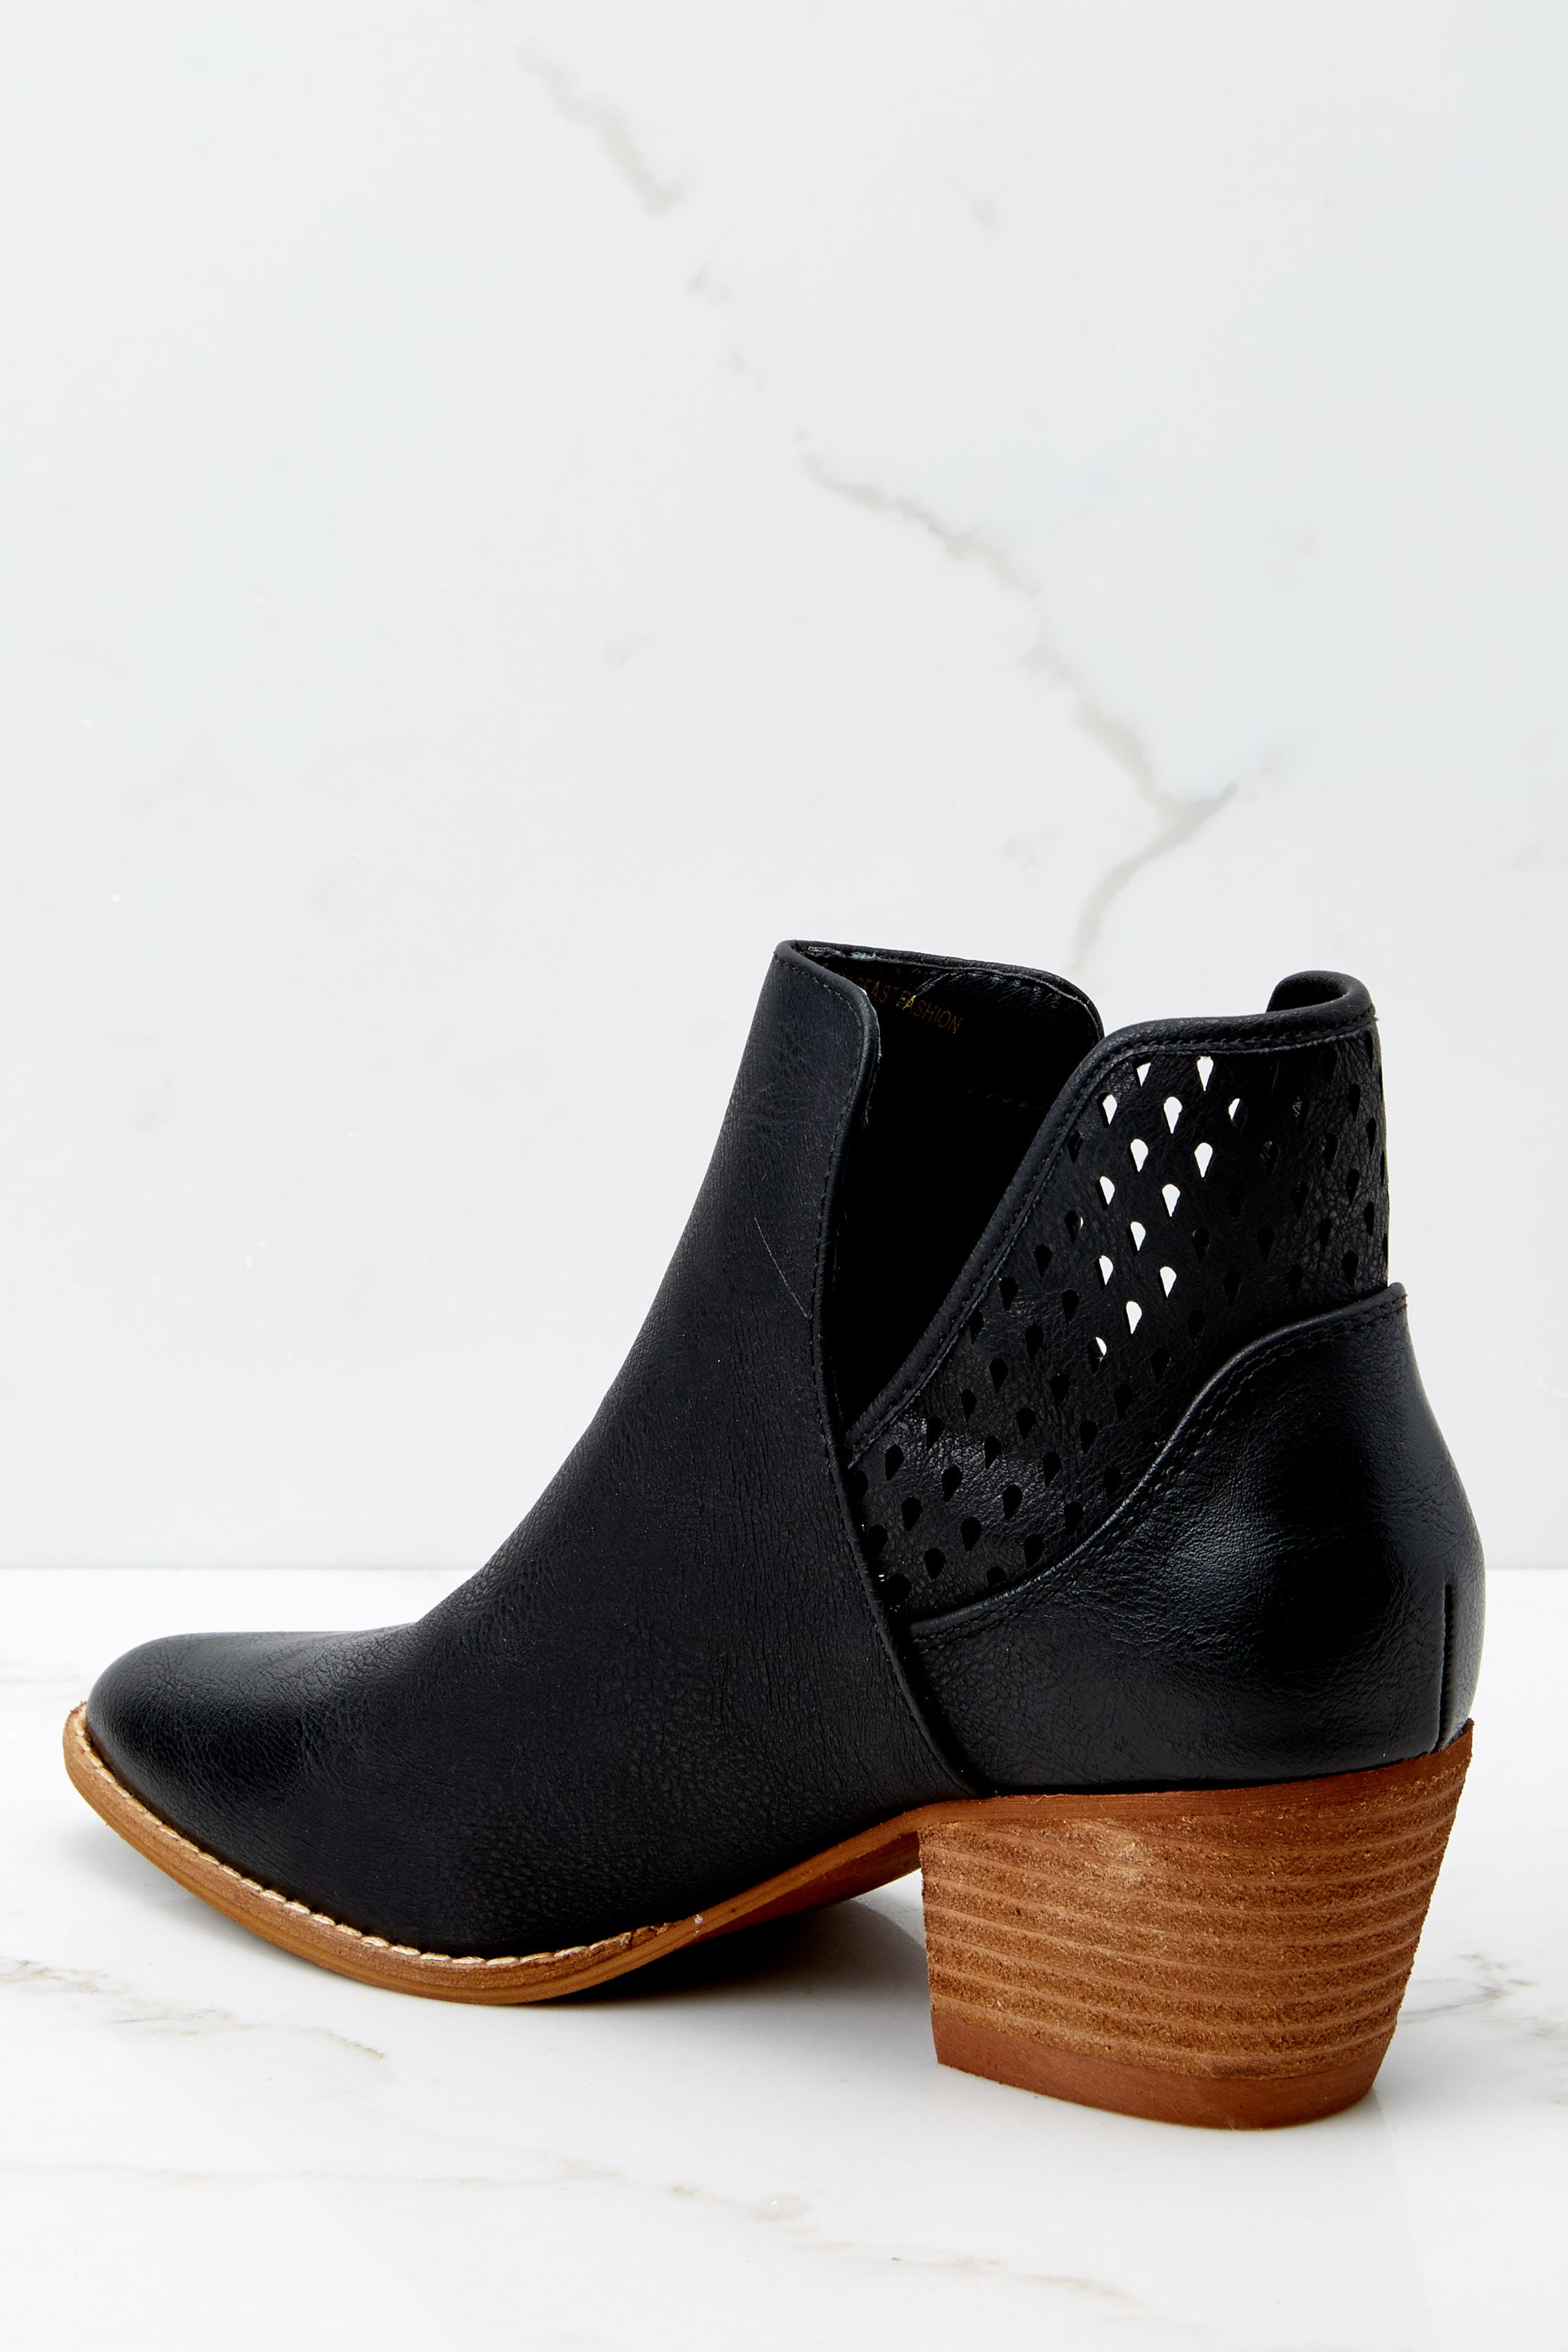 3 All In Favor Black Ankle Booties at reddressboutique.com